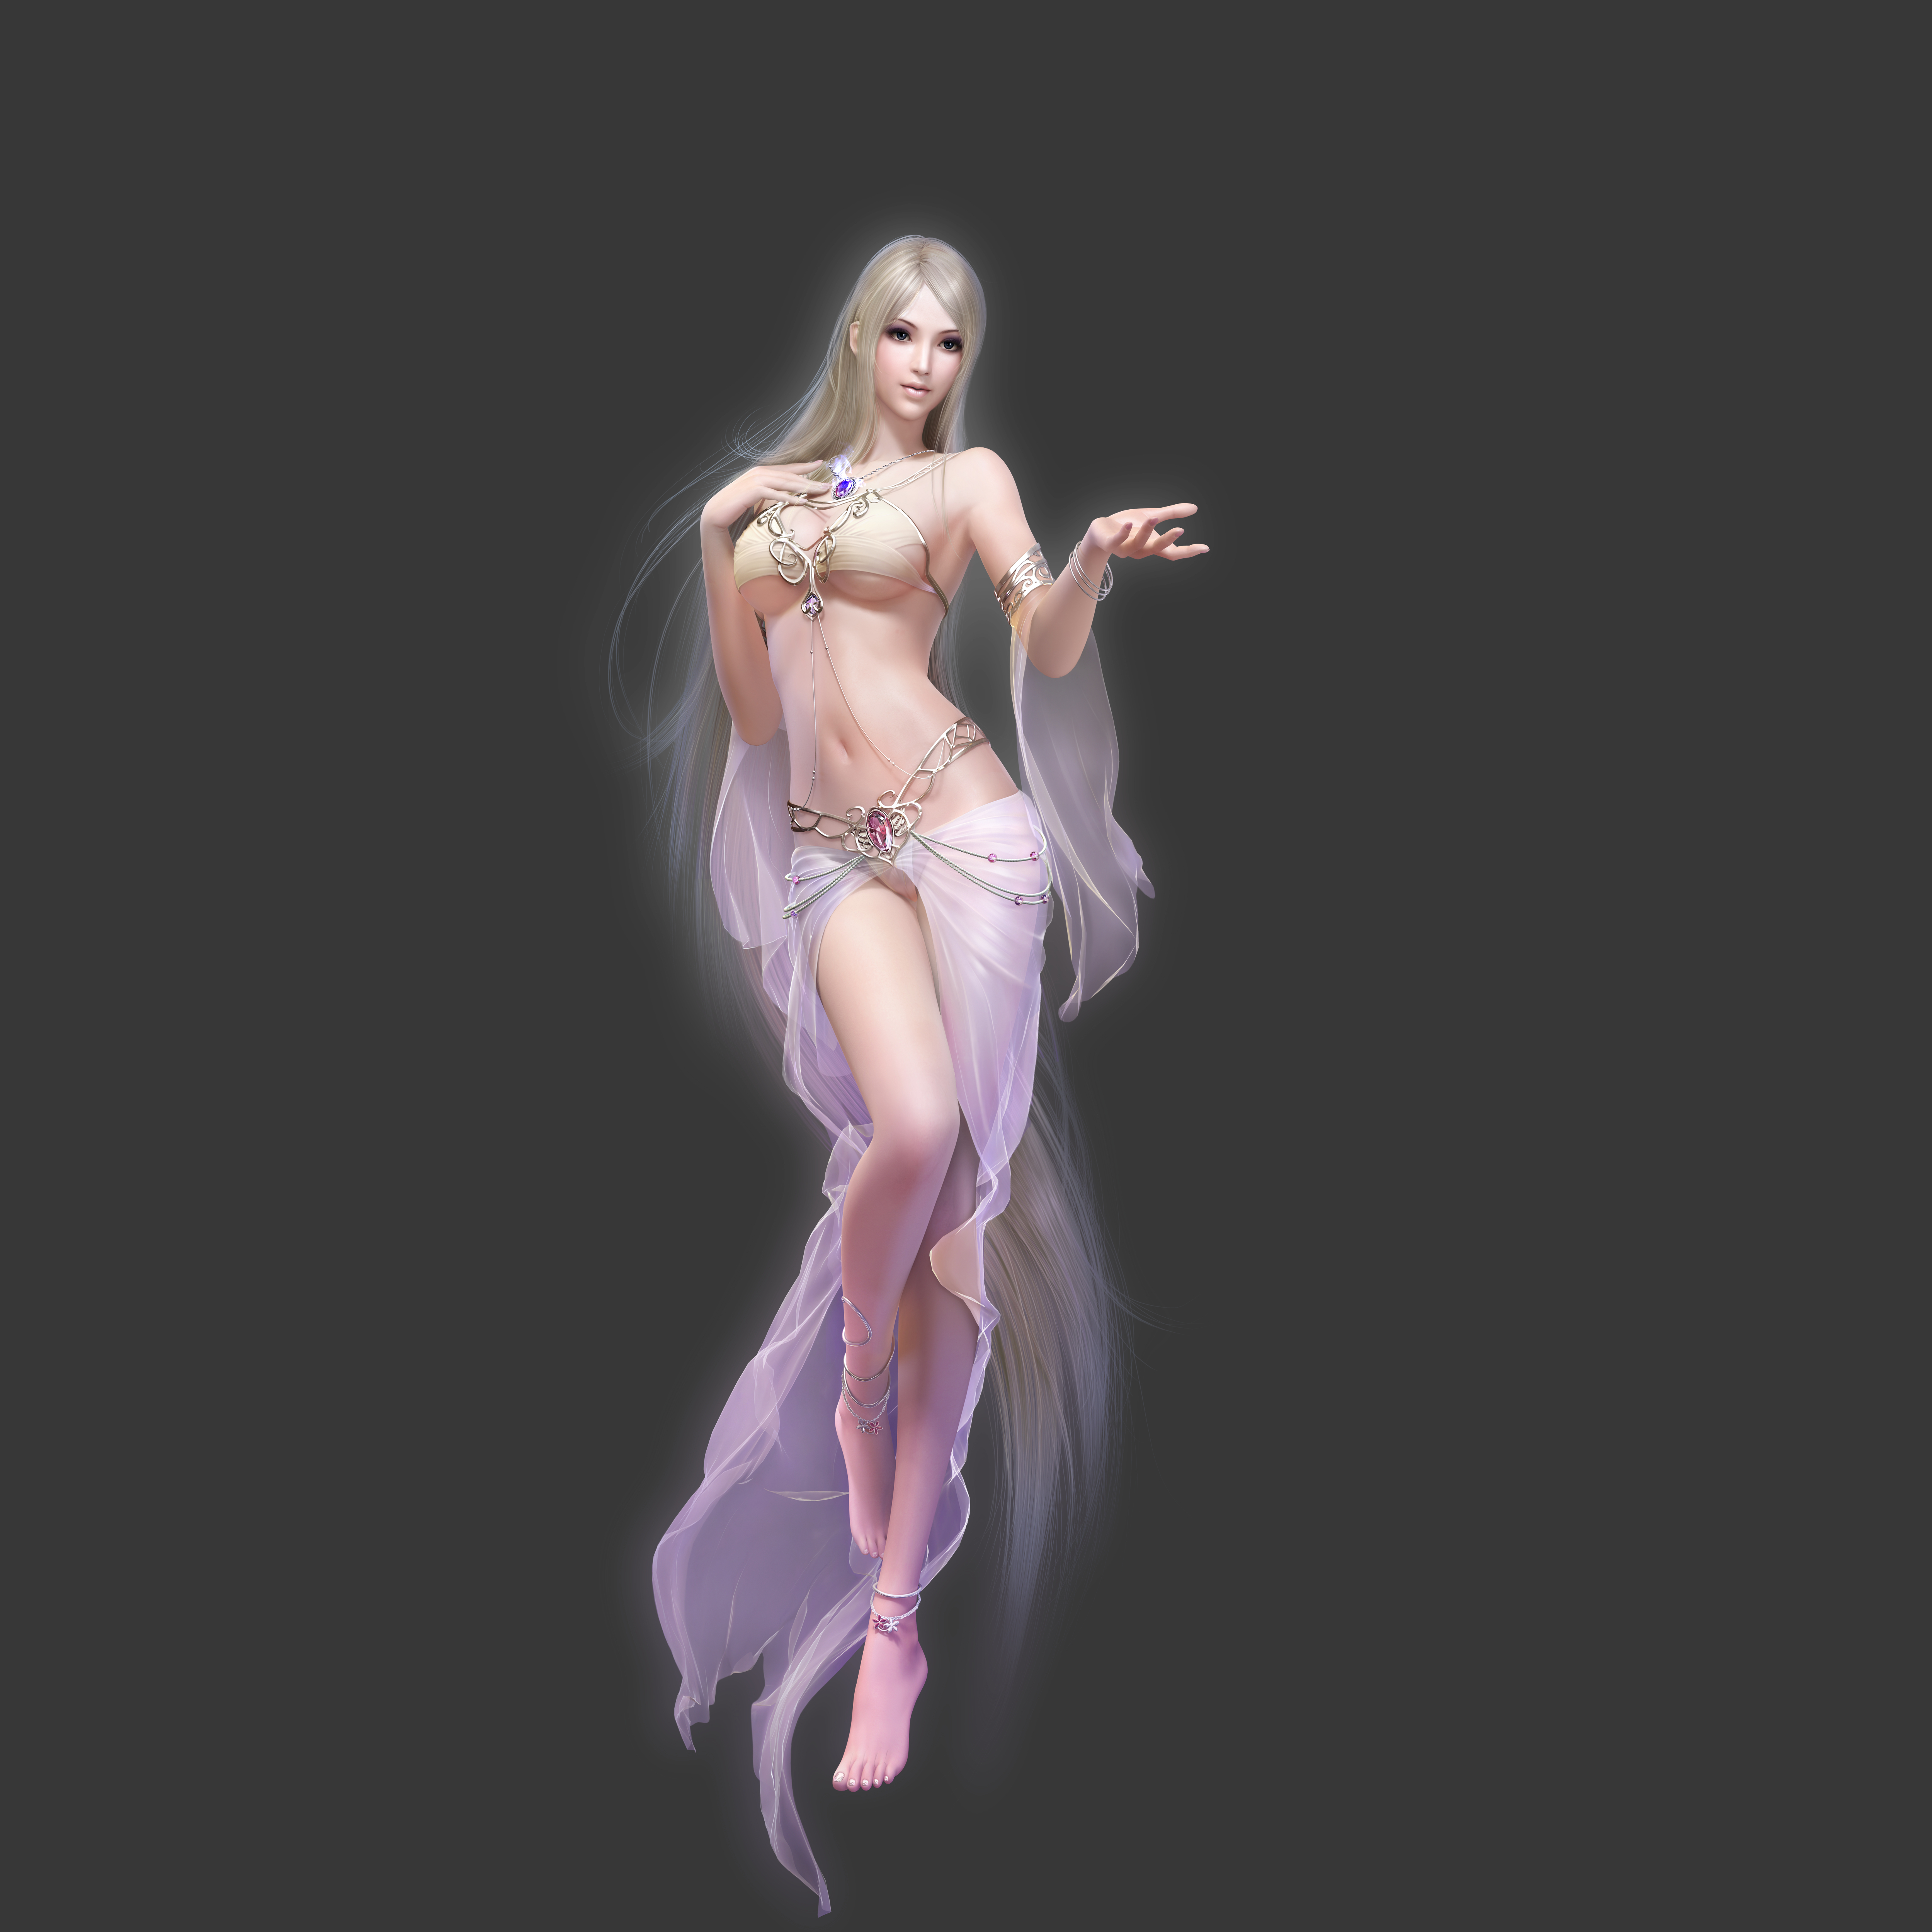 Aion nude wallpaper nude women